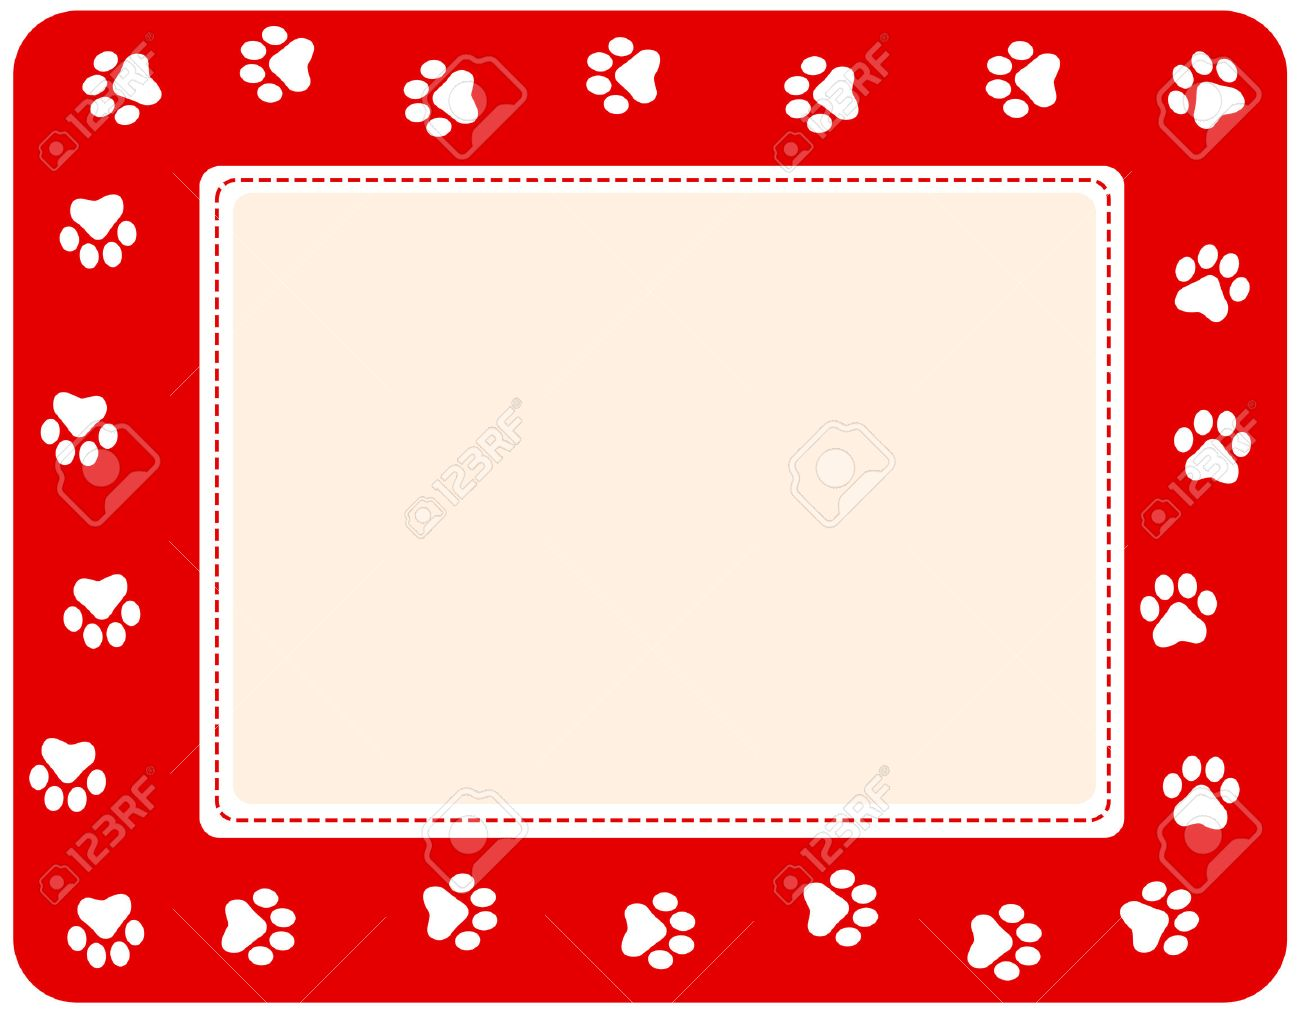 Cute Pet Paw Print Border On White Background Royalty Free Cliparts ...